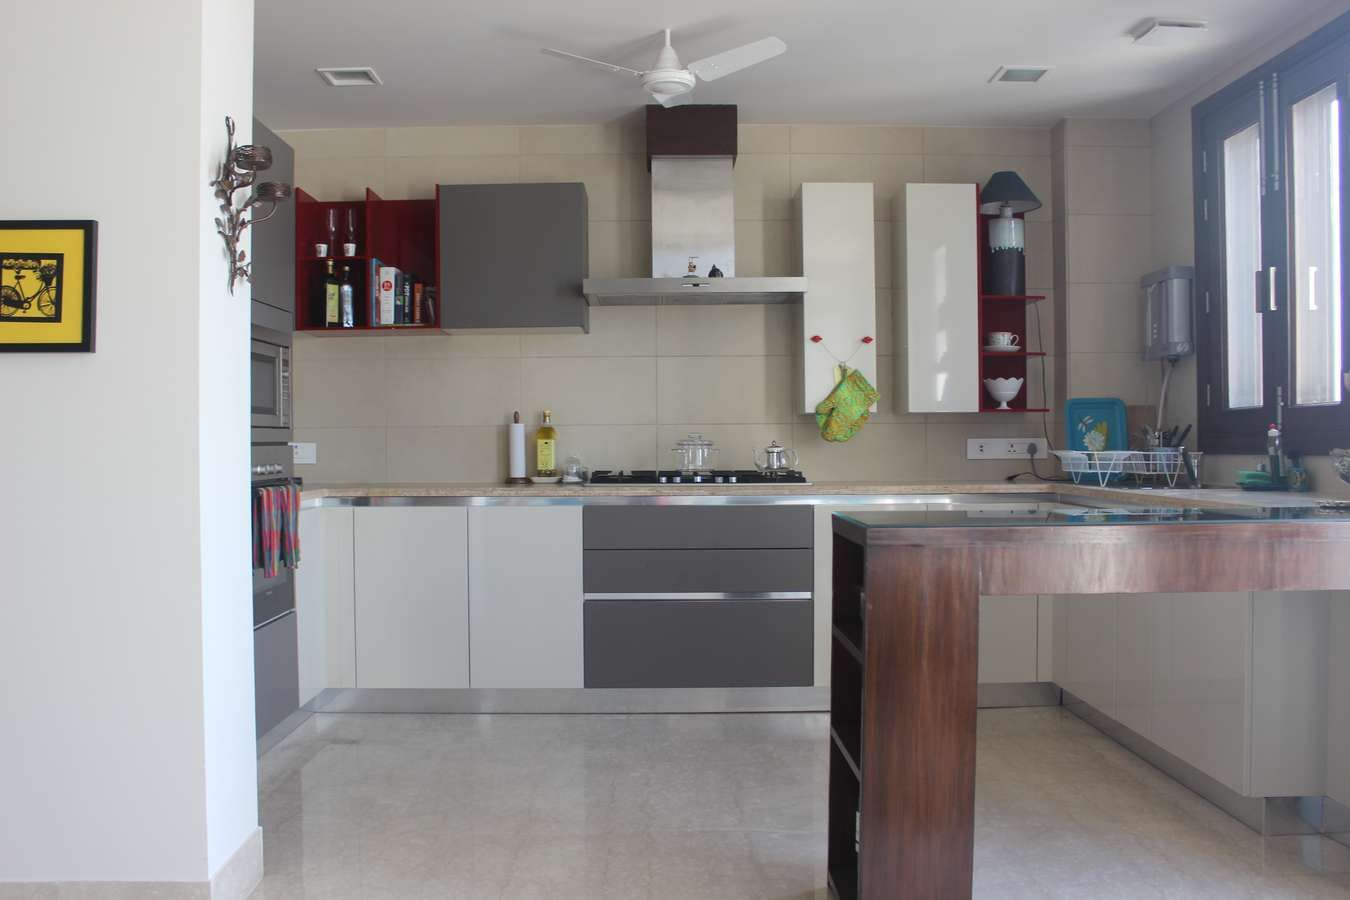 White grey and red modular kitchen delhi | Home tour Delhi India ...